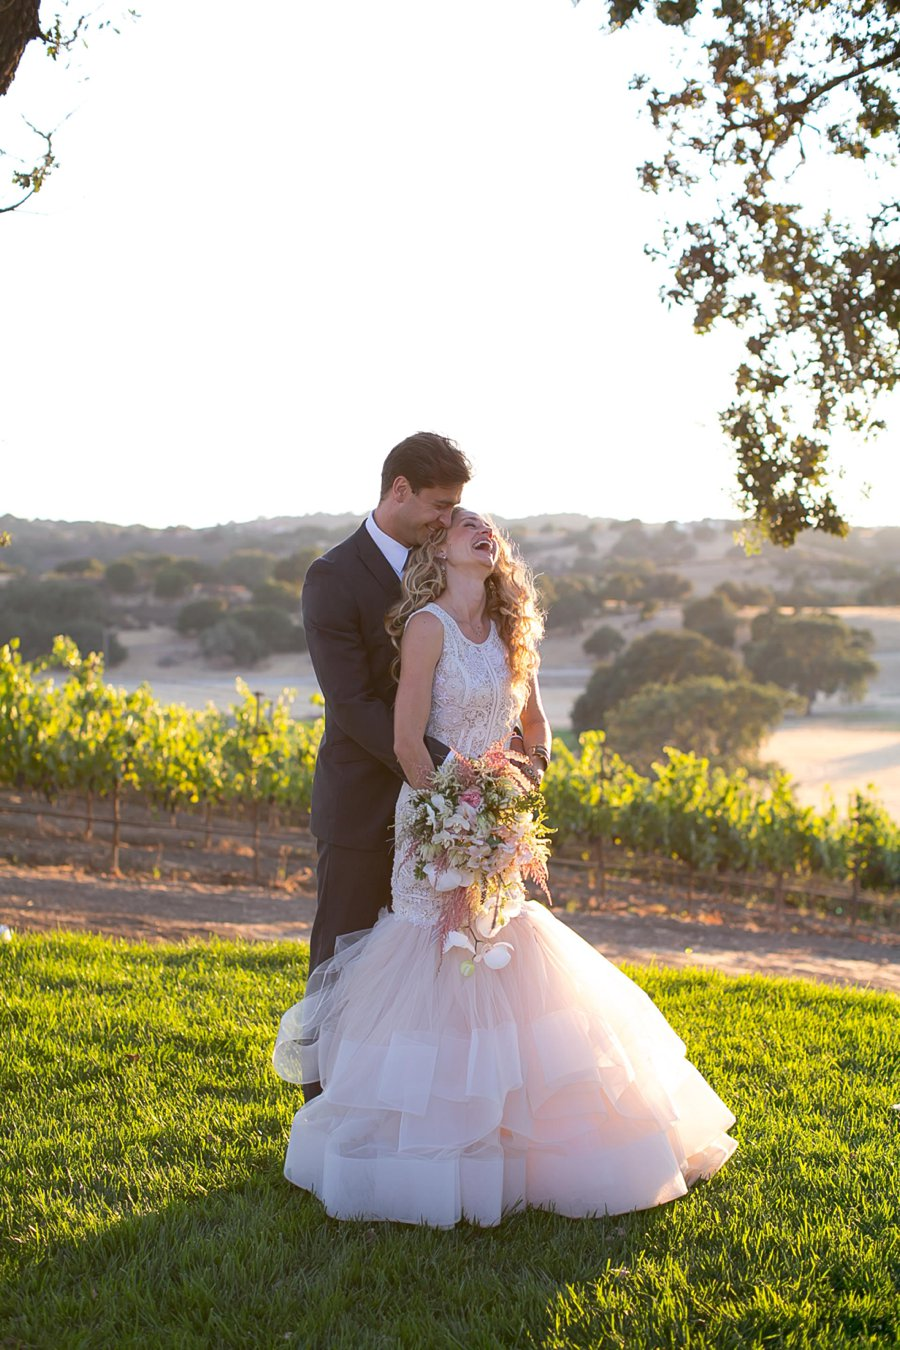 STOLPMANN VILLA AND VINEYARDS | LOS OLIVOS WEDDING PHOTOGRAPHER CHRIS HOLT PHOTOGRAPHY_056.jpg